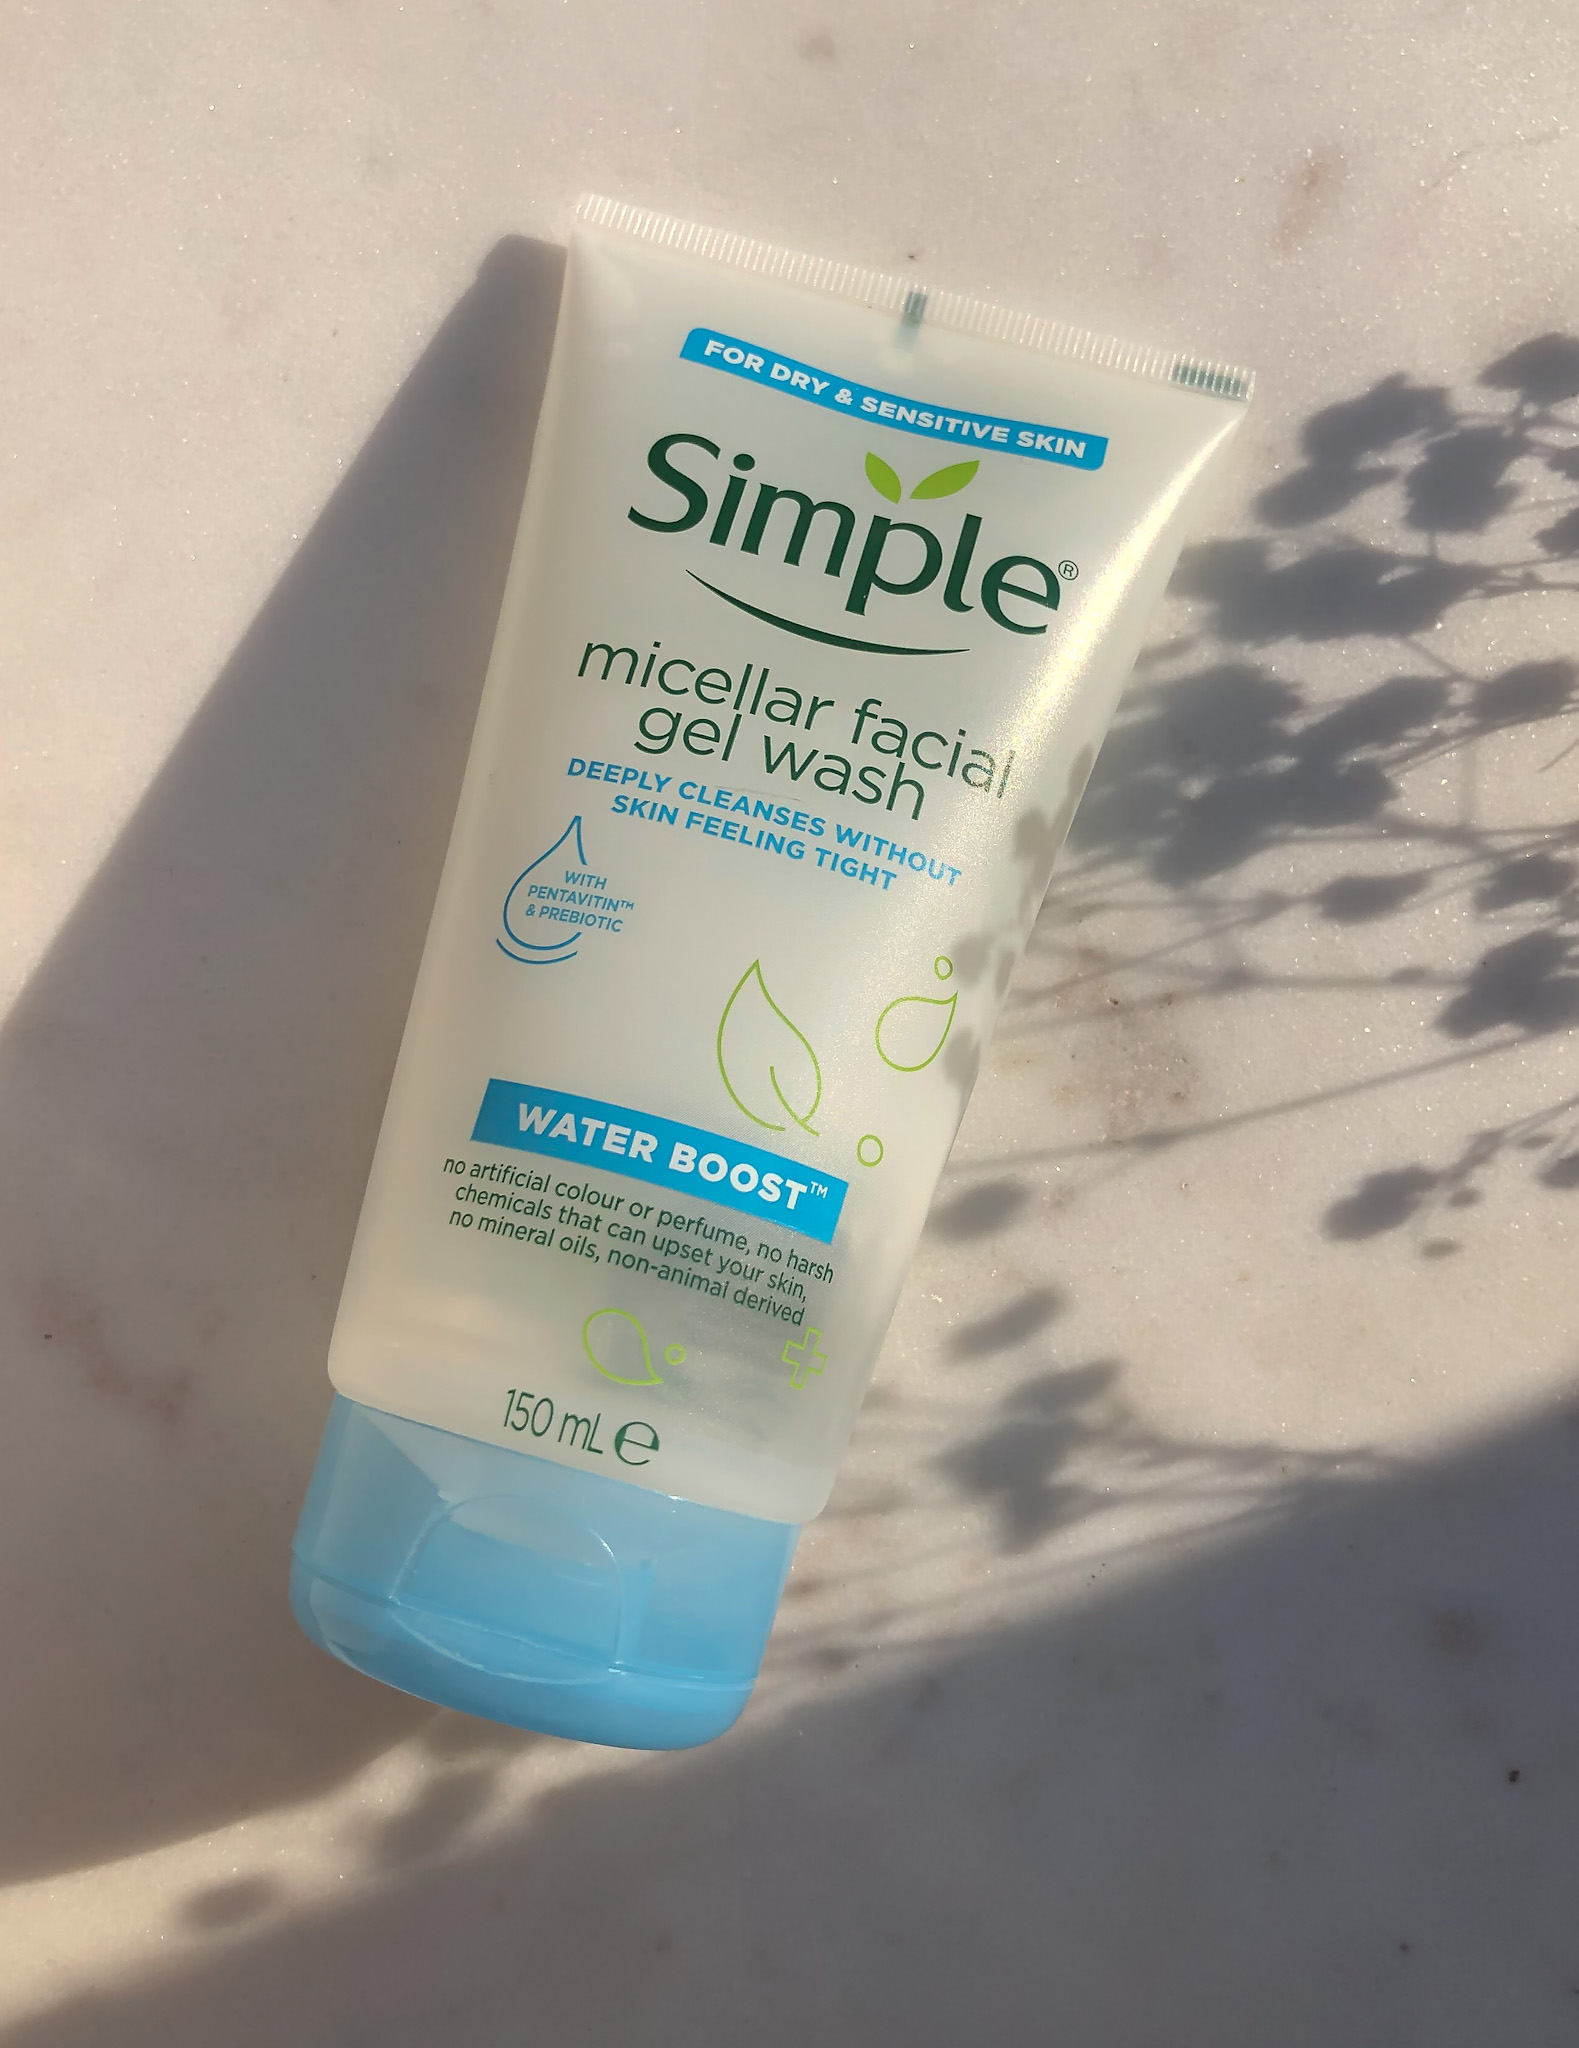 Simple Micellar Facial Gel Wash_Recenzija